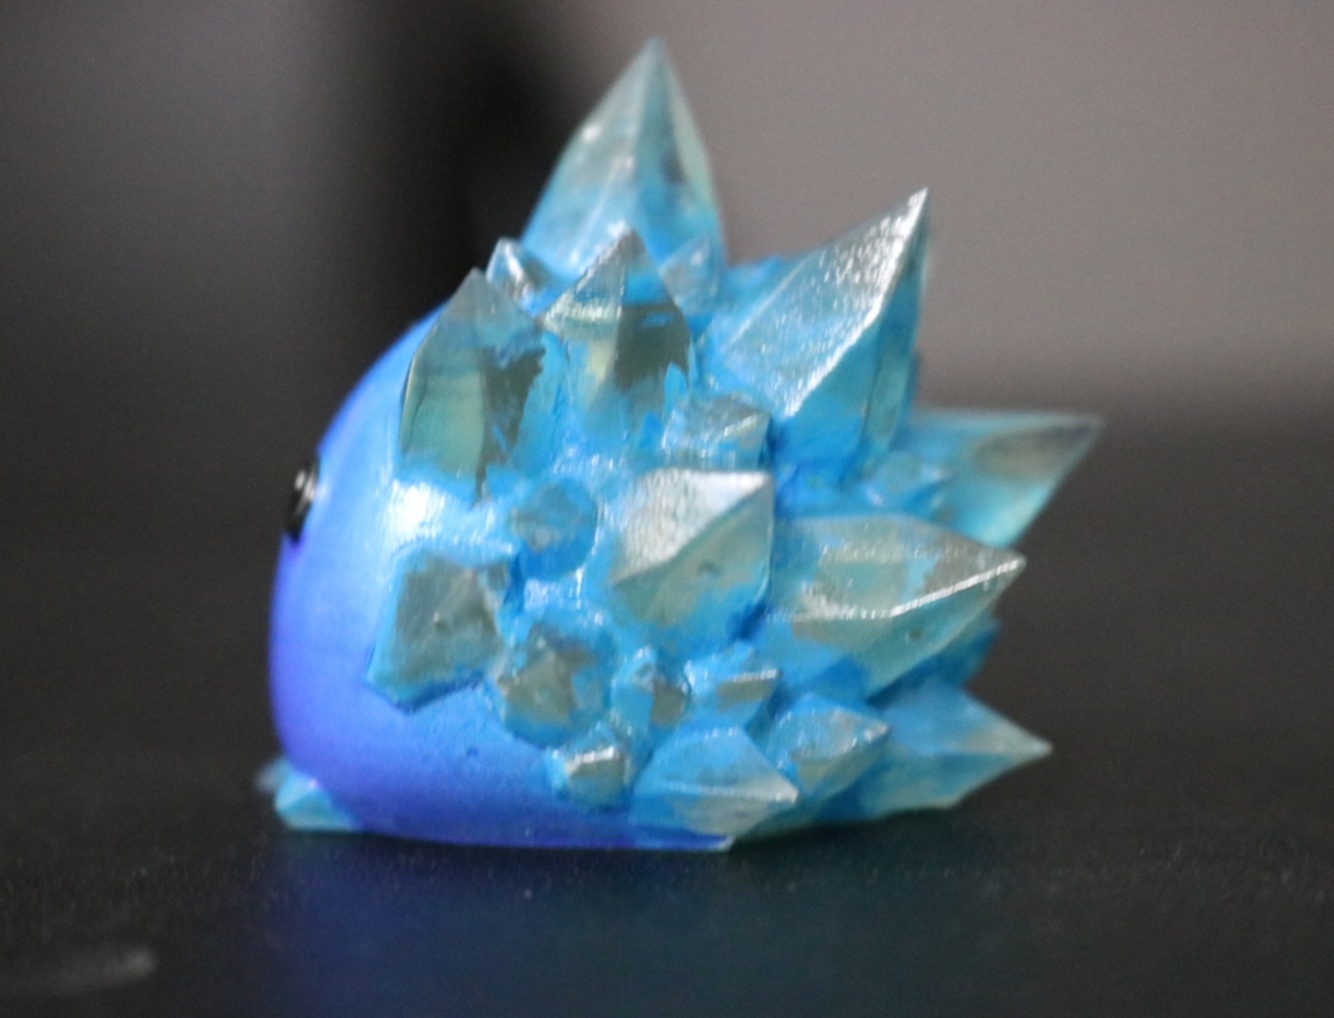 Capture d'écran 2017-05-04 à 09.51.11.png Download free STL file Quantum Slime! And other variations [Crystal, Boom, Rock and Honey] • 3D printer template, ChaosCoreTech